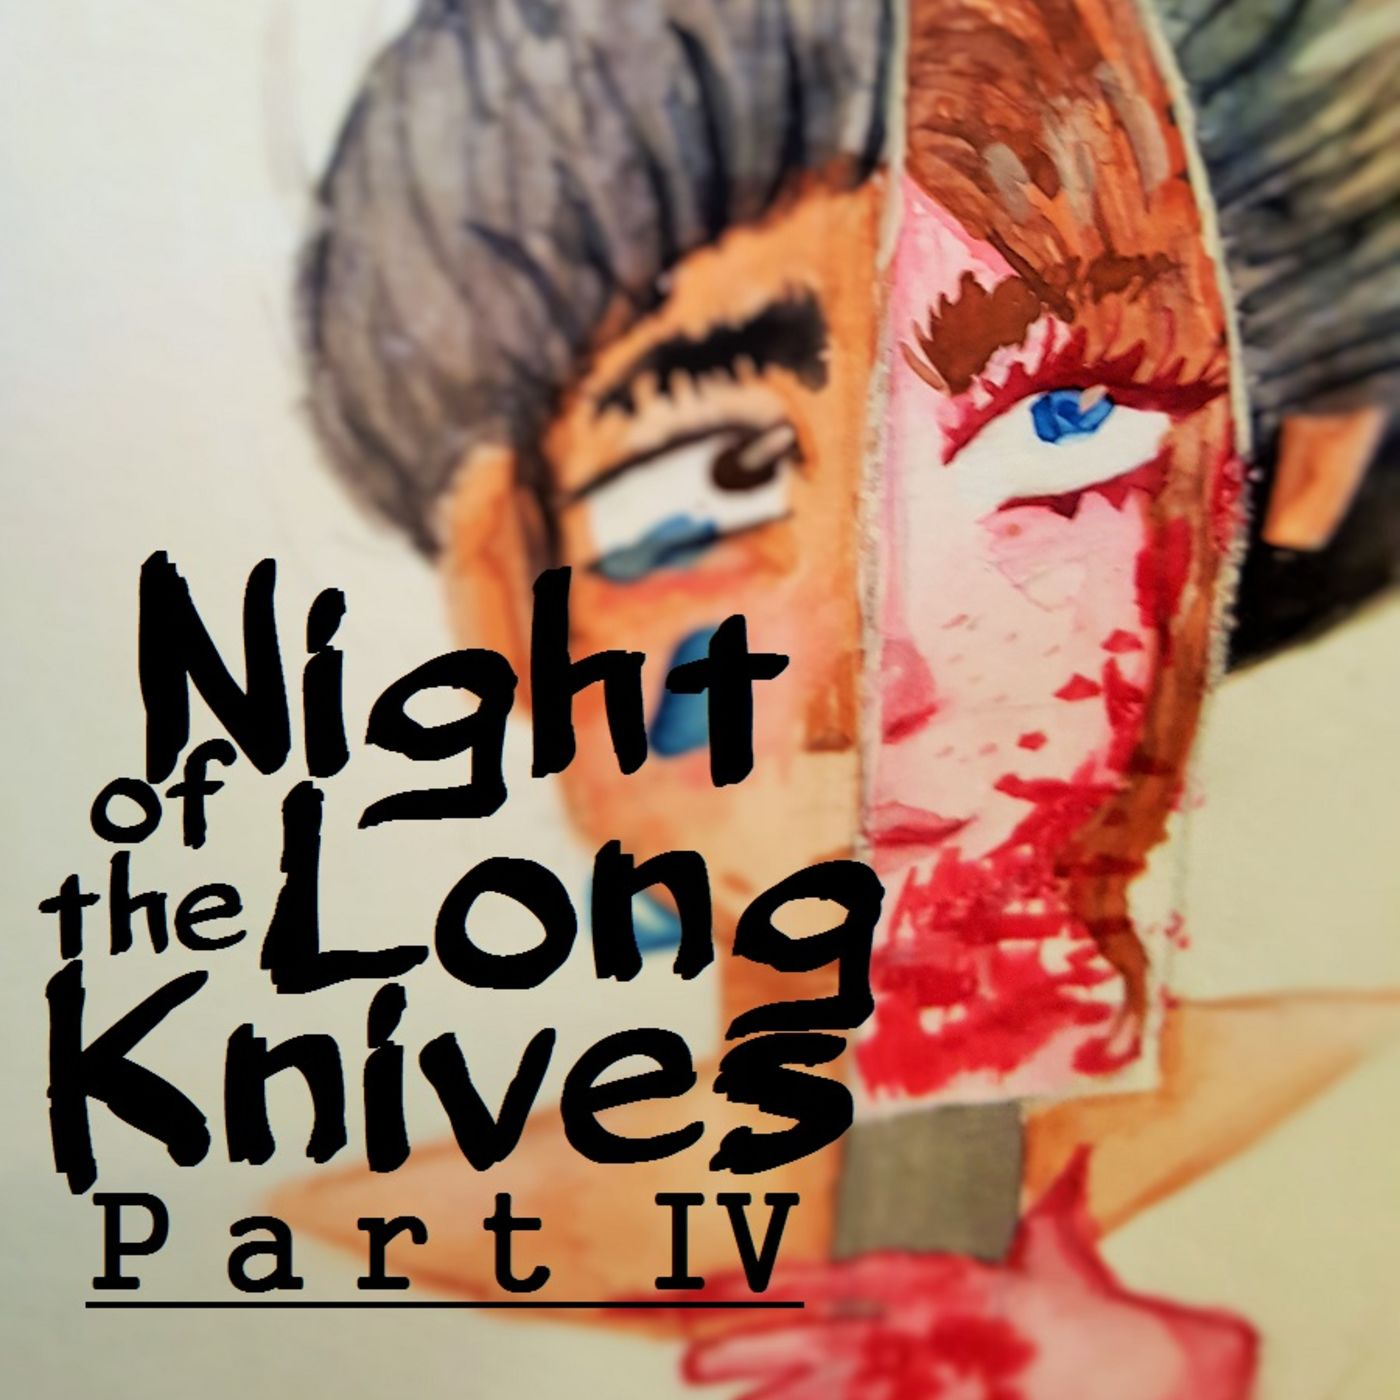 Night of the Long Knives Part IV